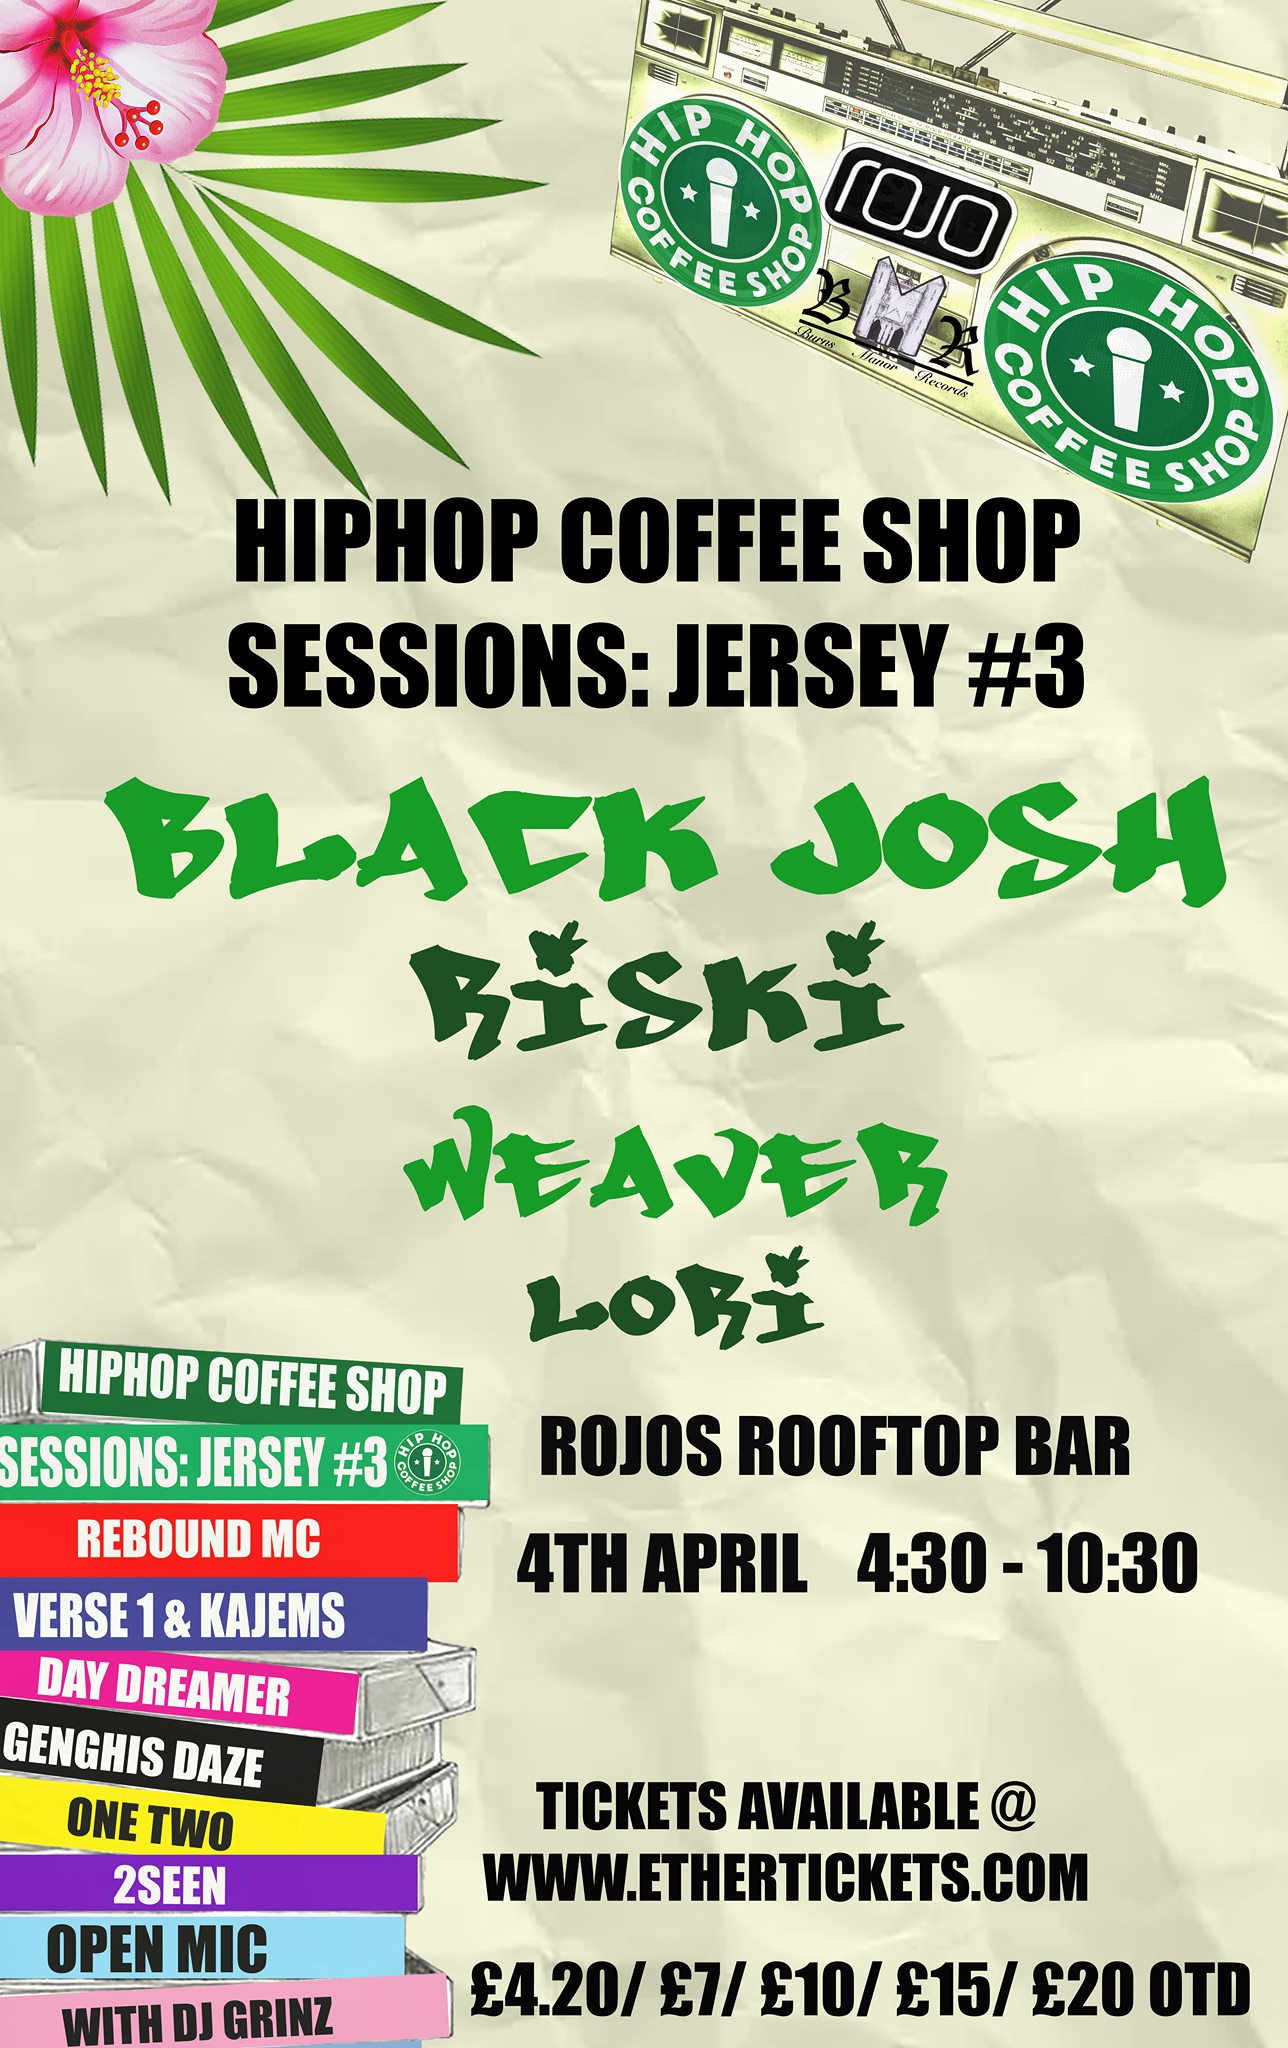 Event Poster For Hip Hop Coffee Shop Sessions: Jersey #3